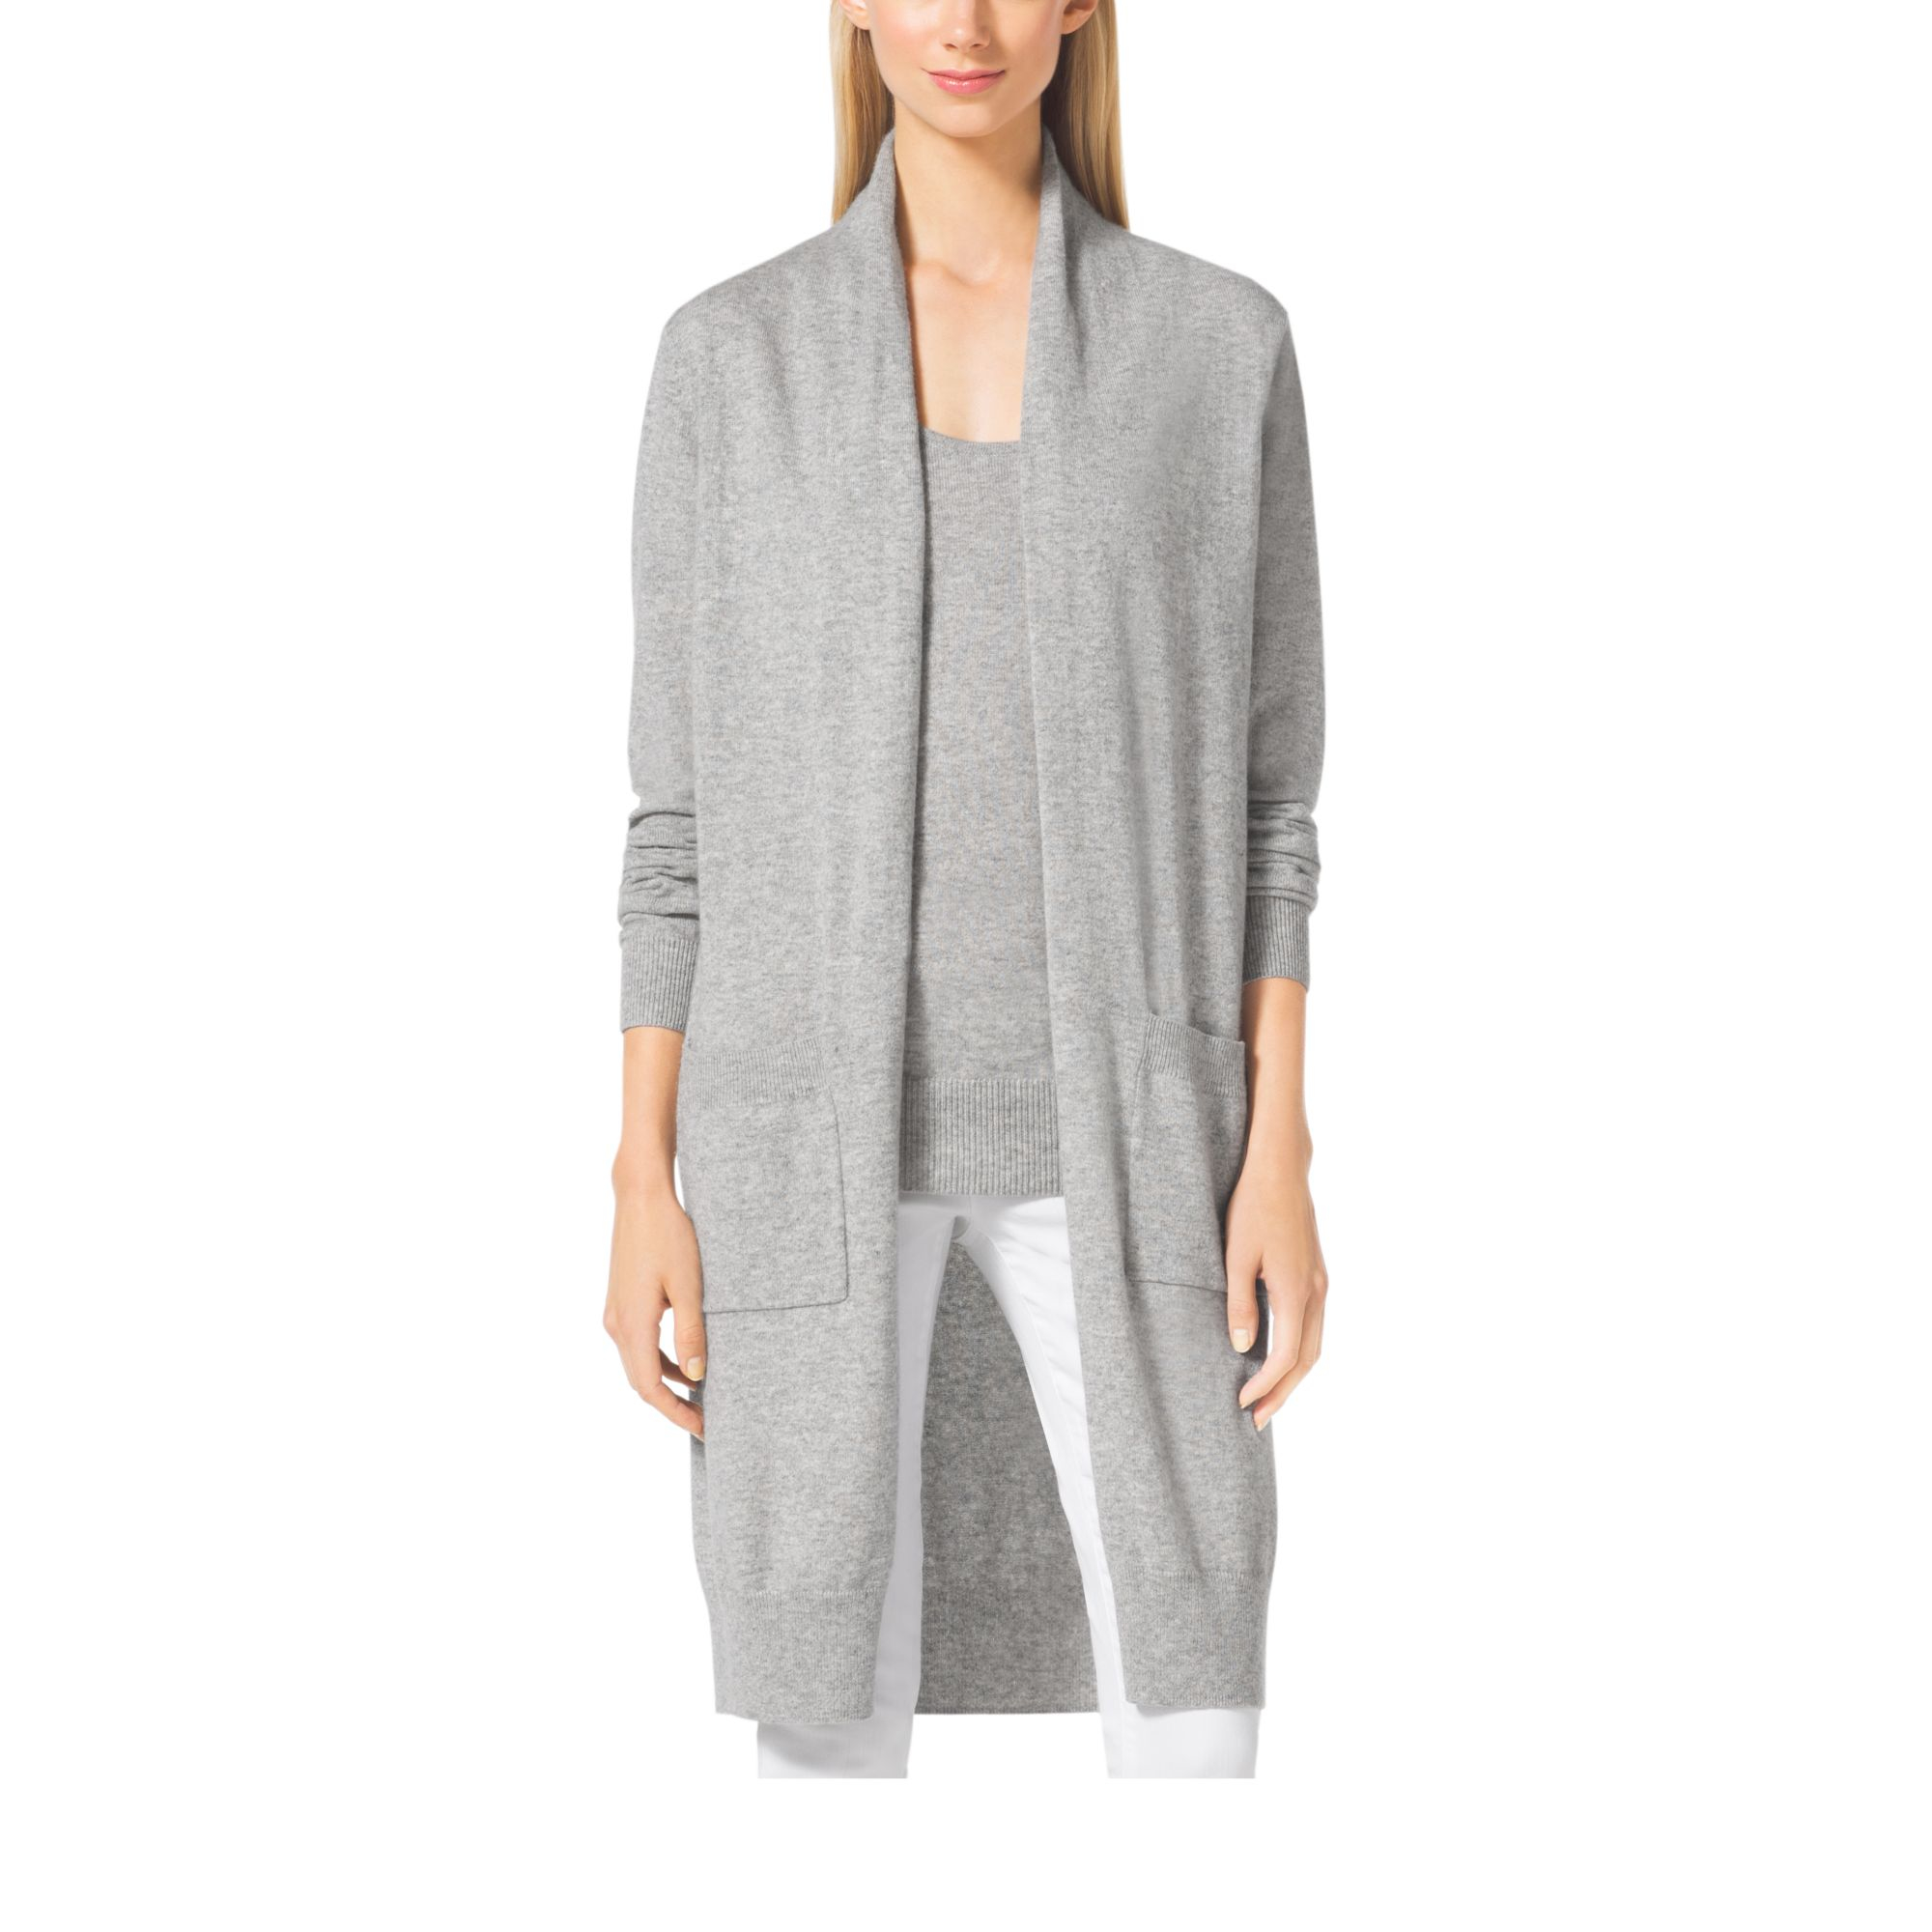 Michael kors Merino Wool And Cashmere Cardigan in Gray | Lyst